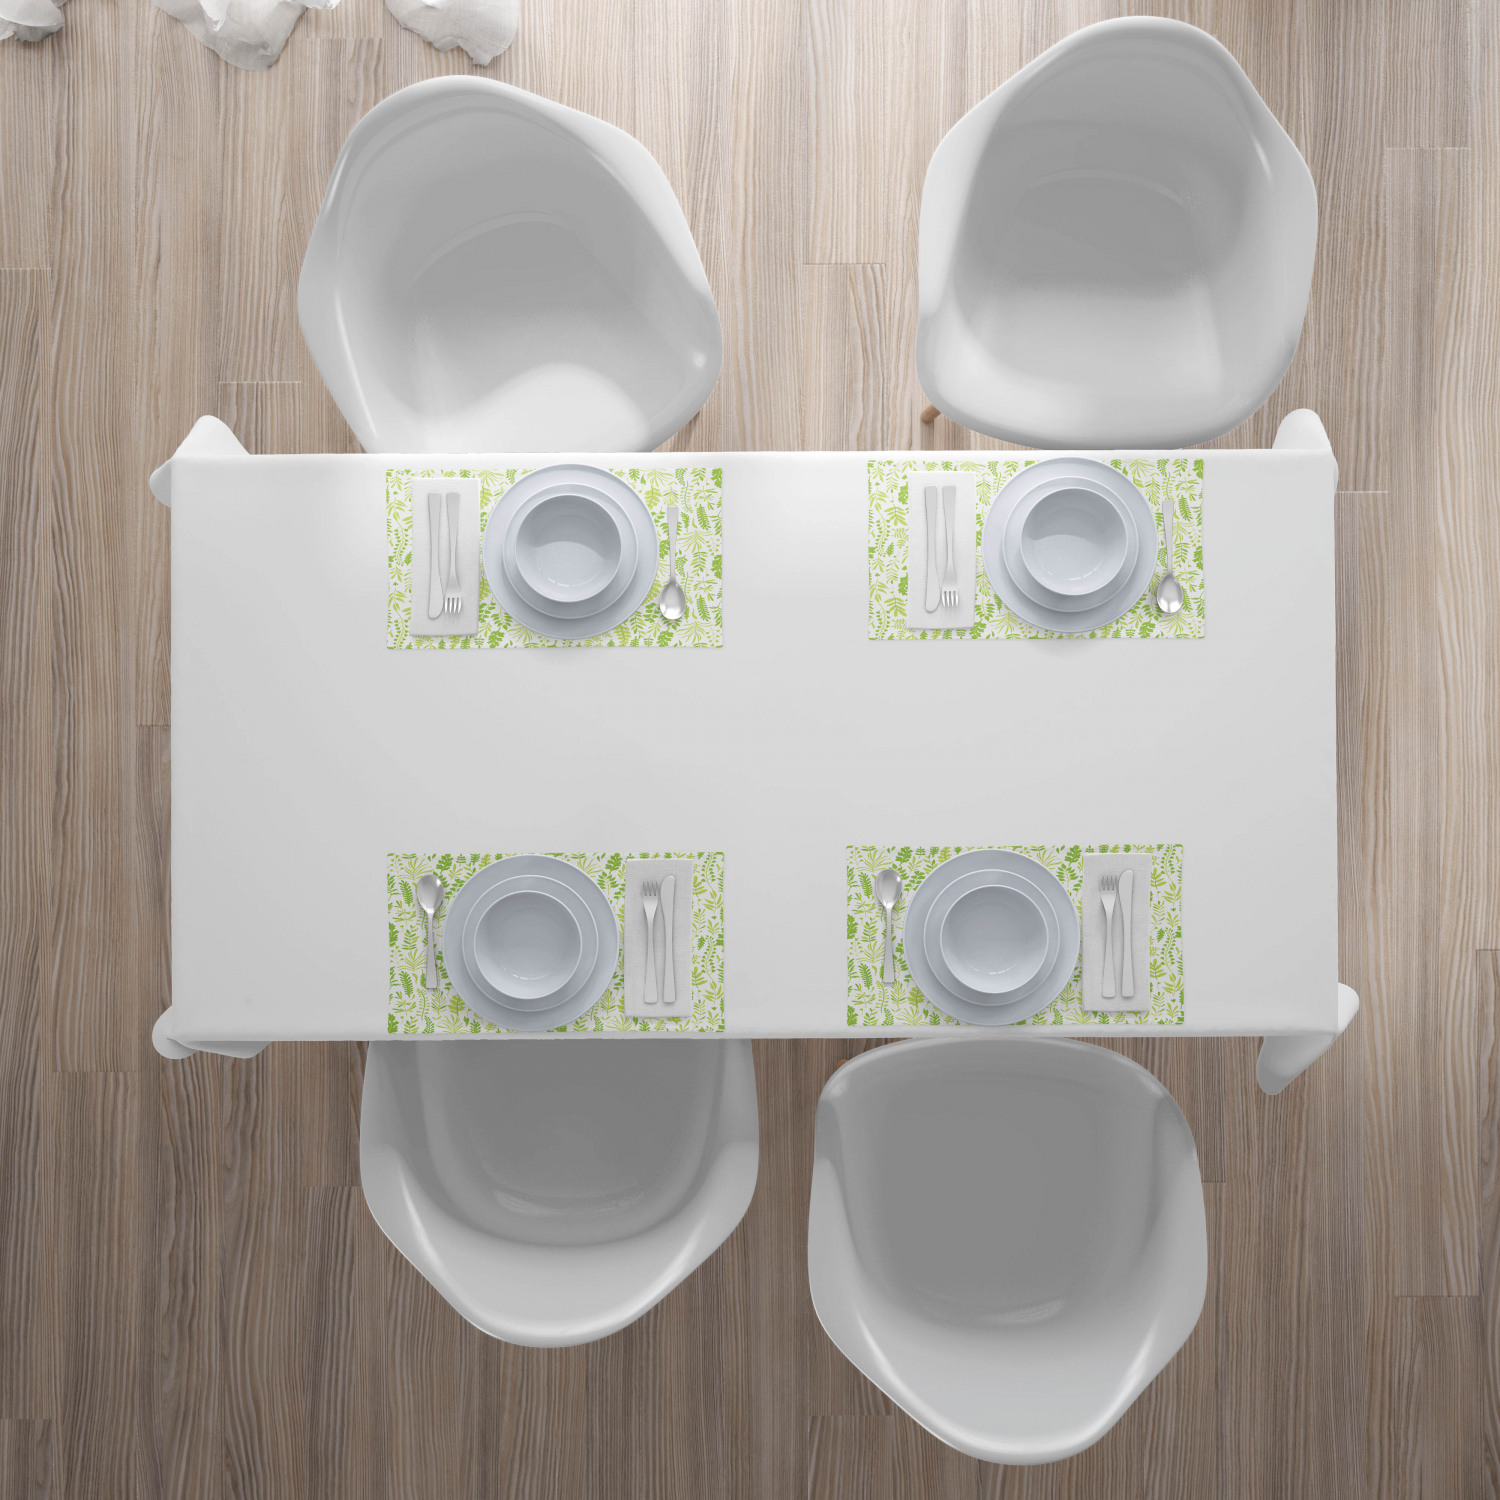 Placemats 4 Piece Set Fabric Dining Room and Kitchen Table Ambesonne